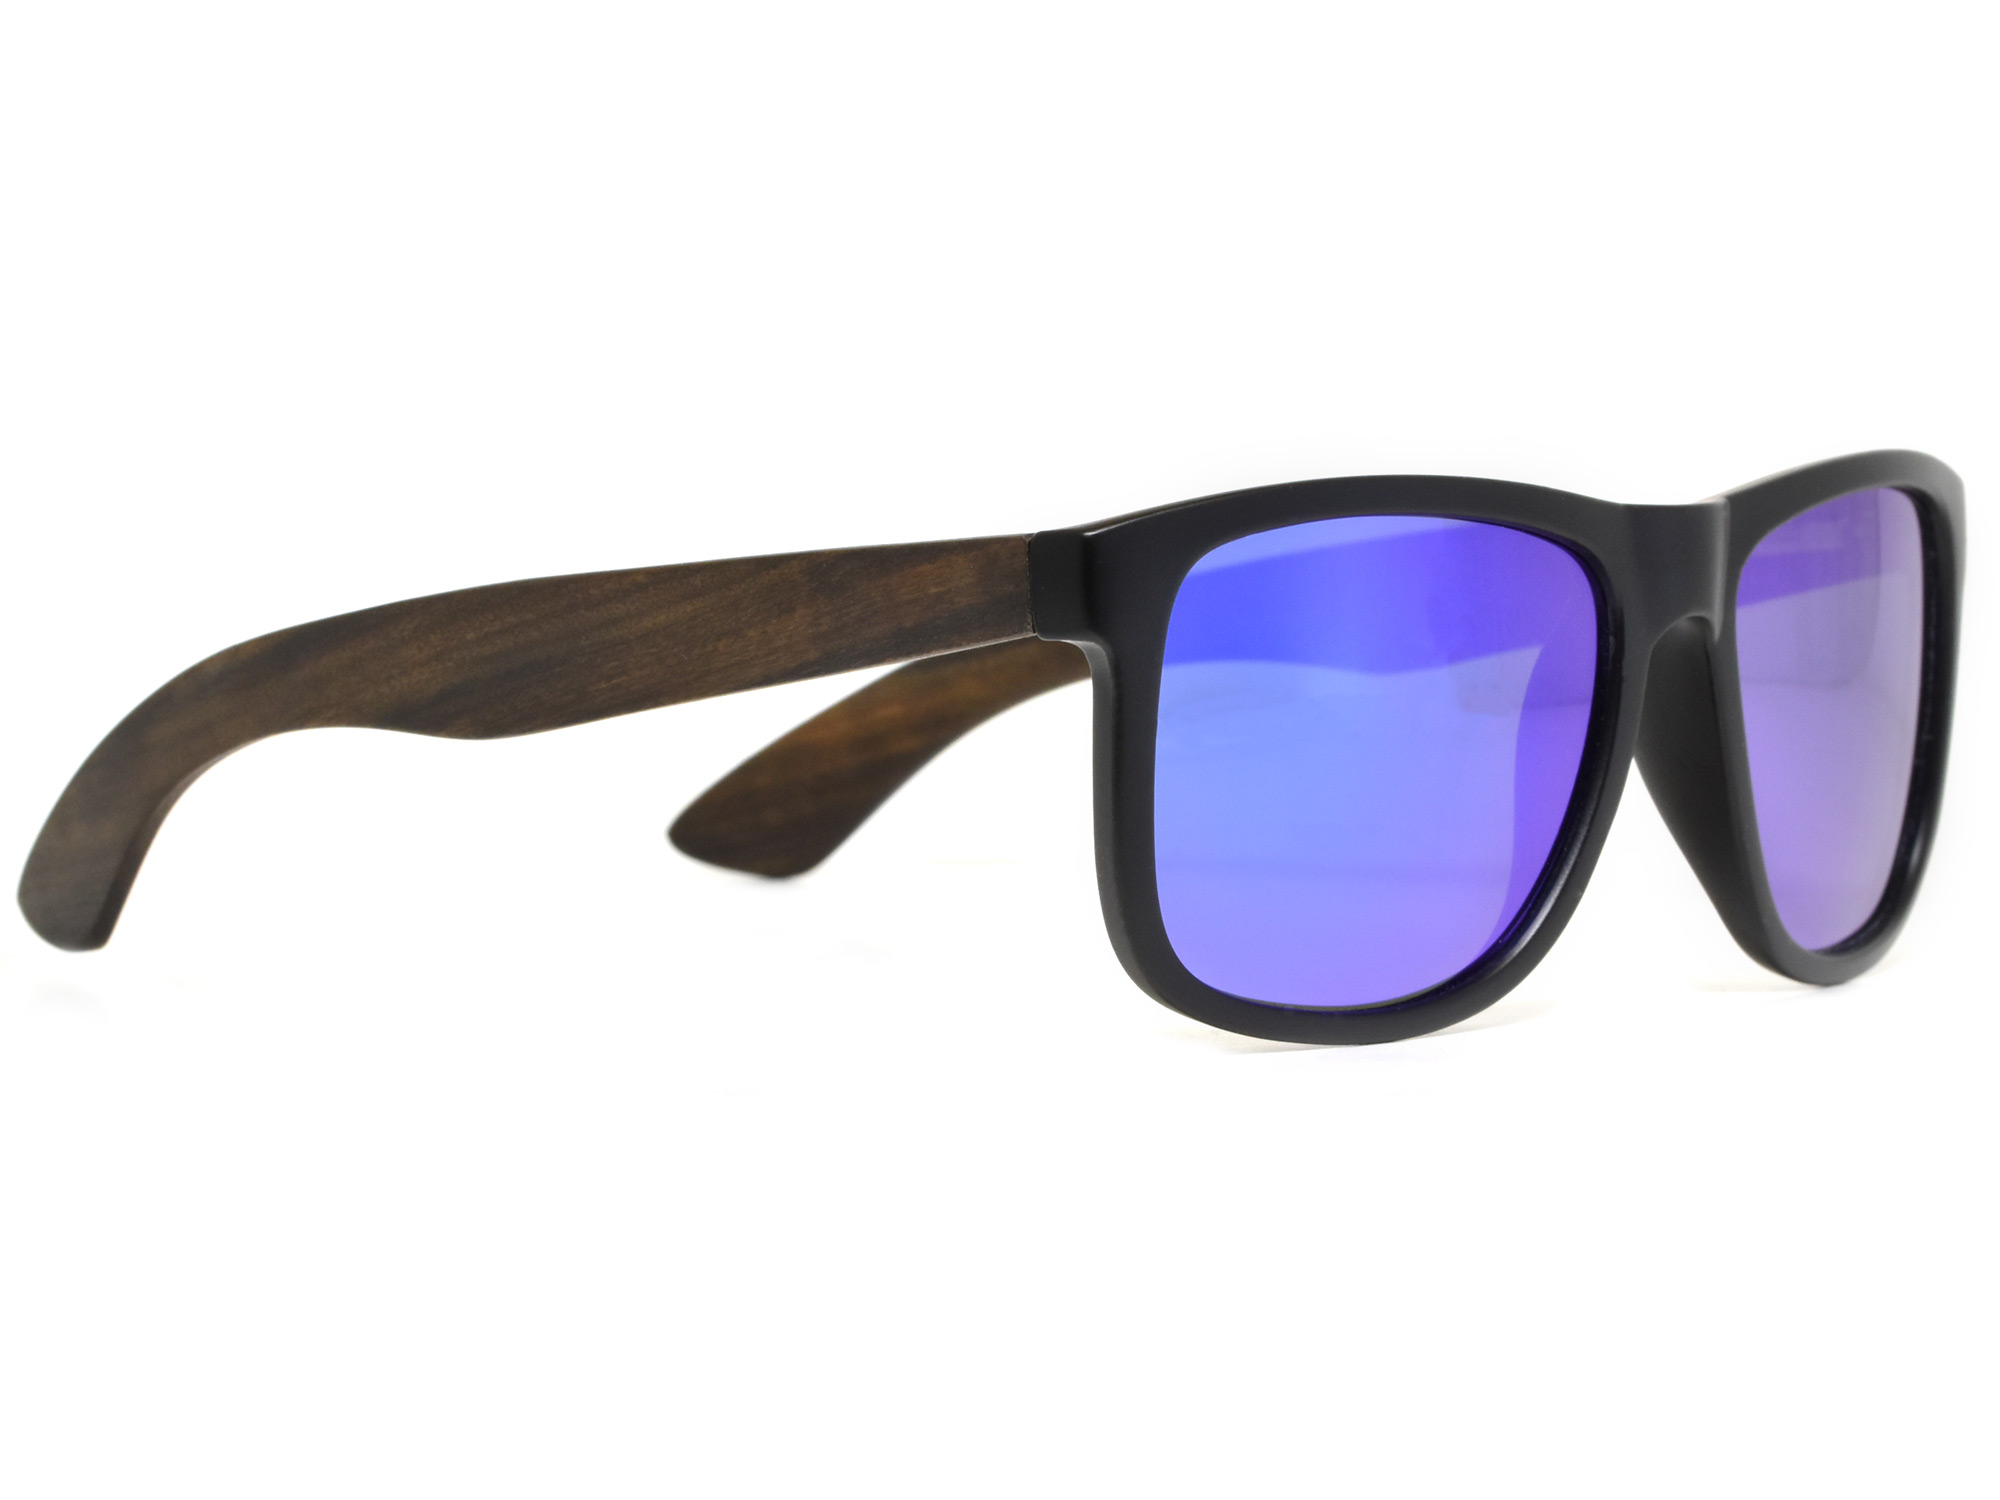 Square ebony wood sunglasses with blue mirrored polarized lenses right